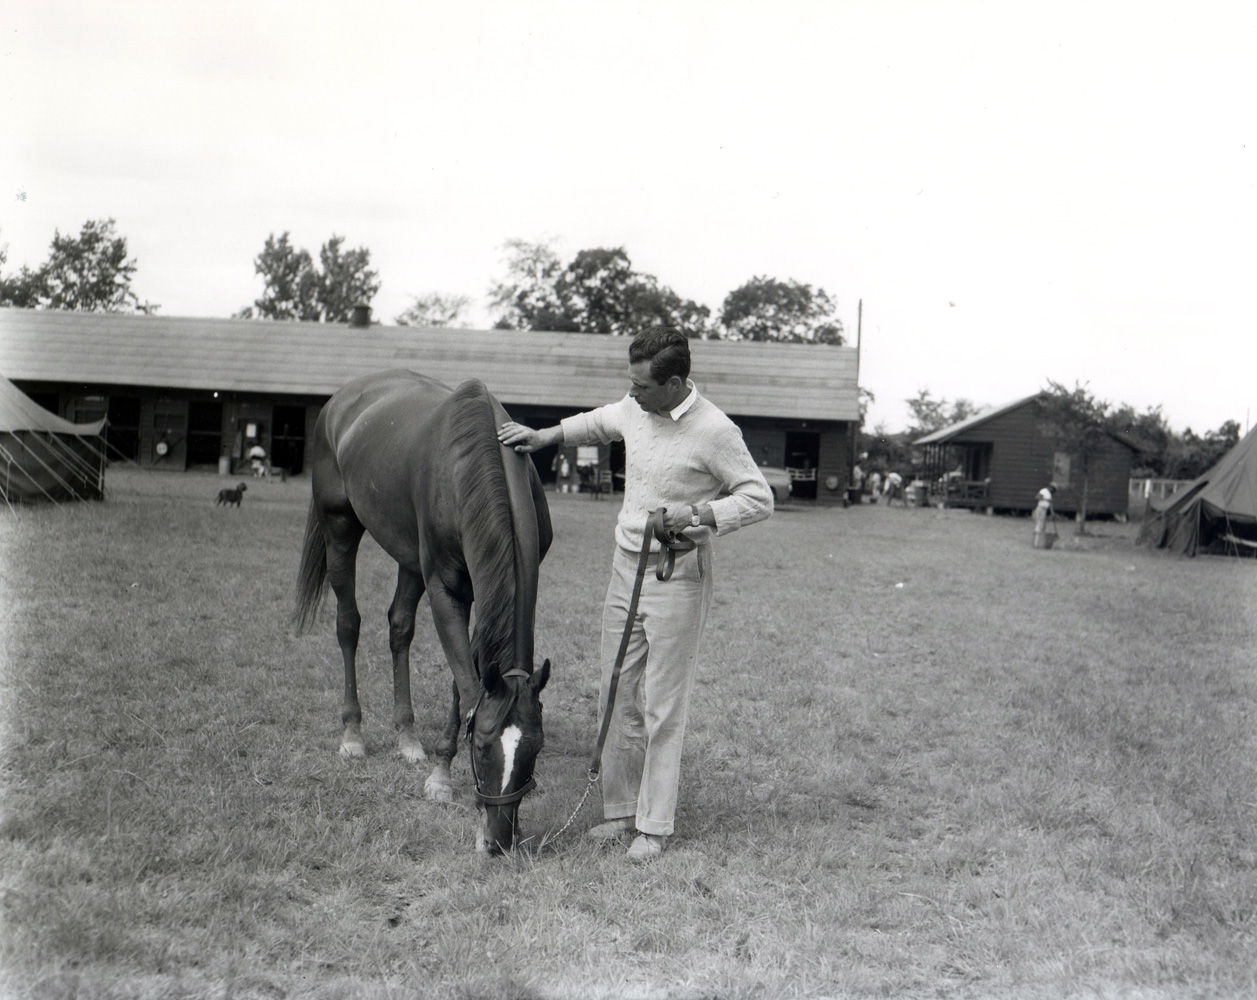 Neji with trainer Mikey Smithwick at Saratoga in 1958 (Keeneland Library Morgan Collection/Museum Collection)